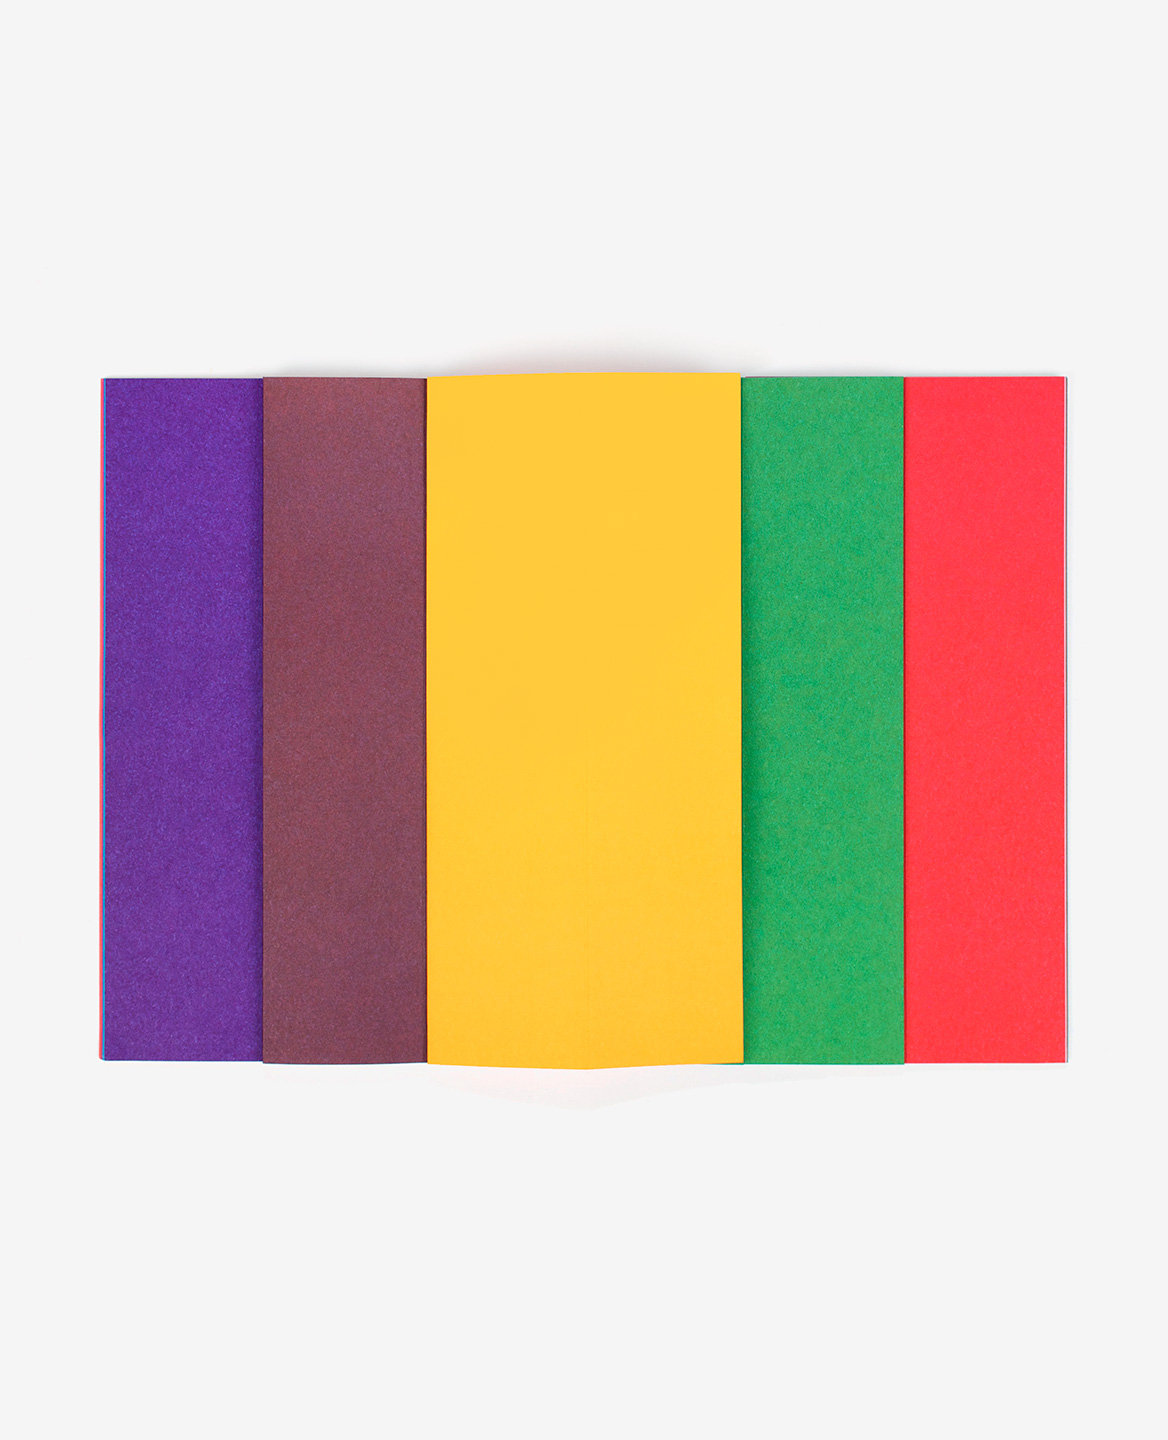 Violet, brown, yellow, green and red strips from the book Strips